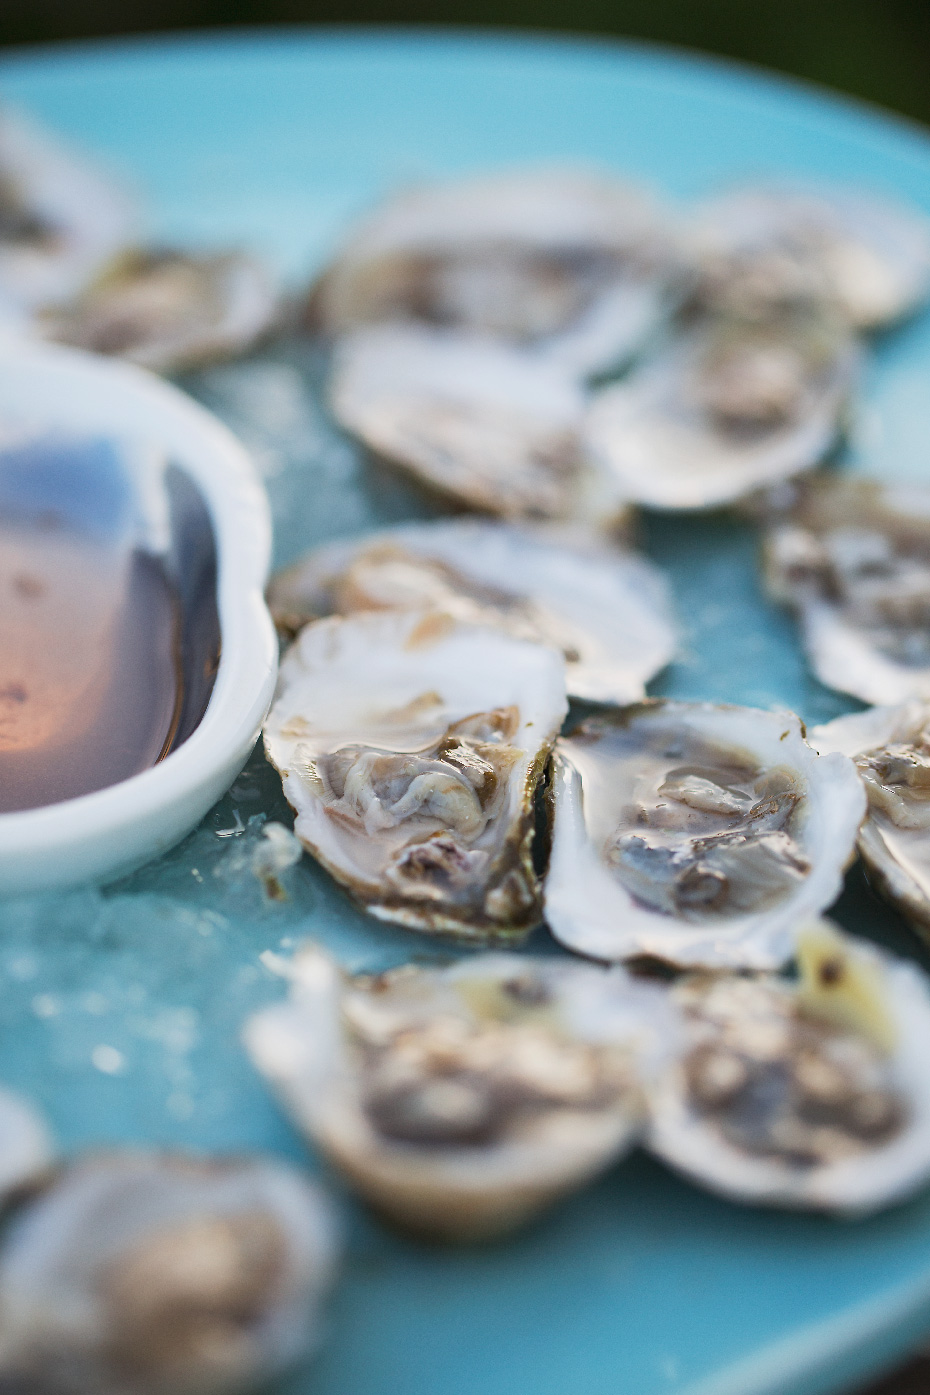 Stacey Van Berkel Photography I Fresh shucked oysters on turquoise plate I Newport, Rhode Island